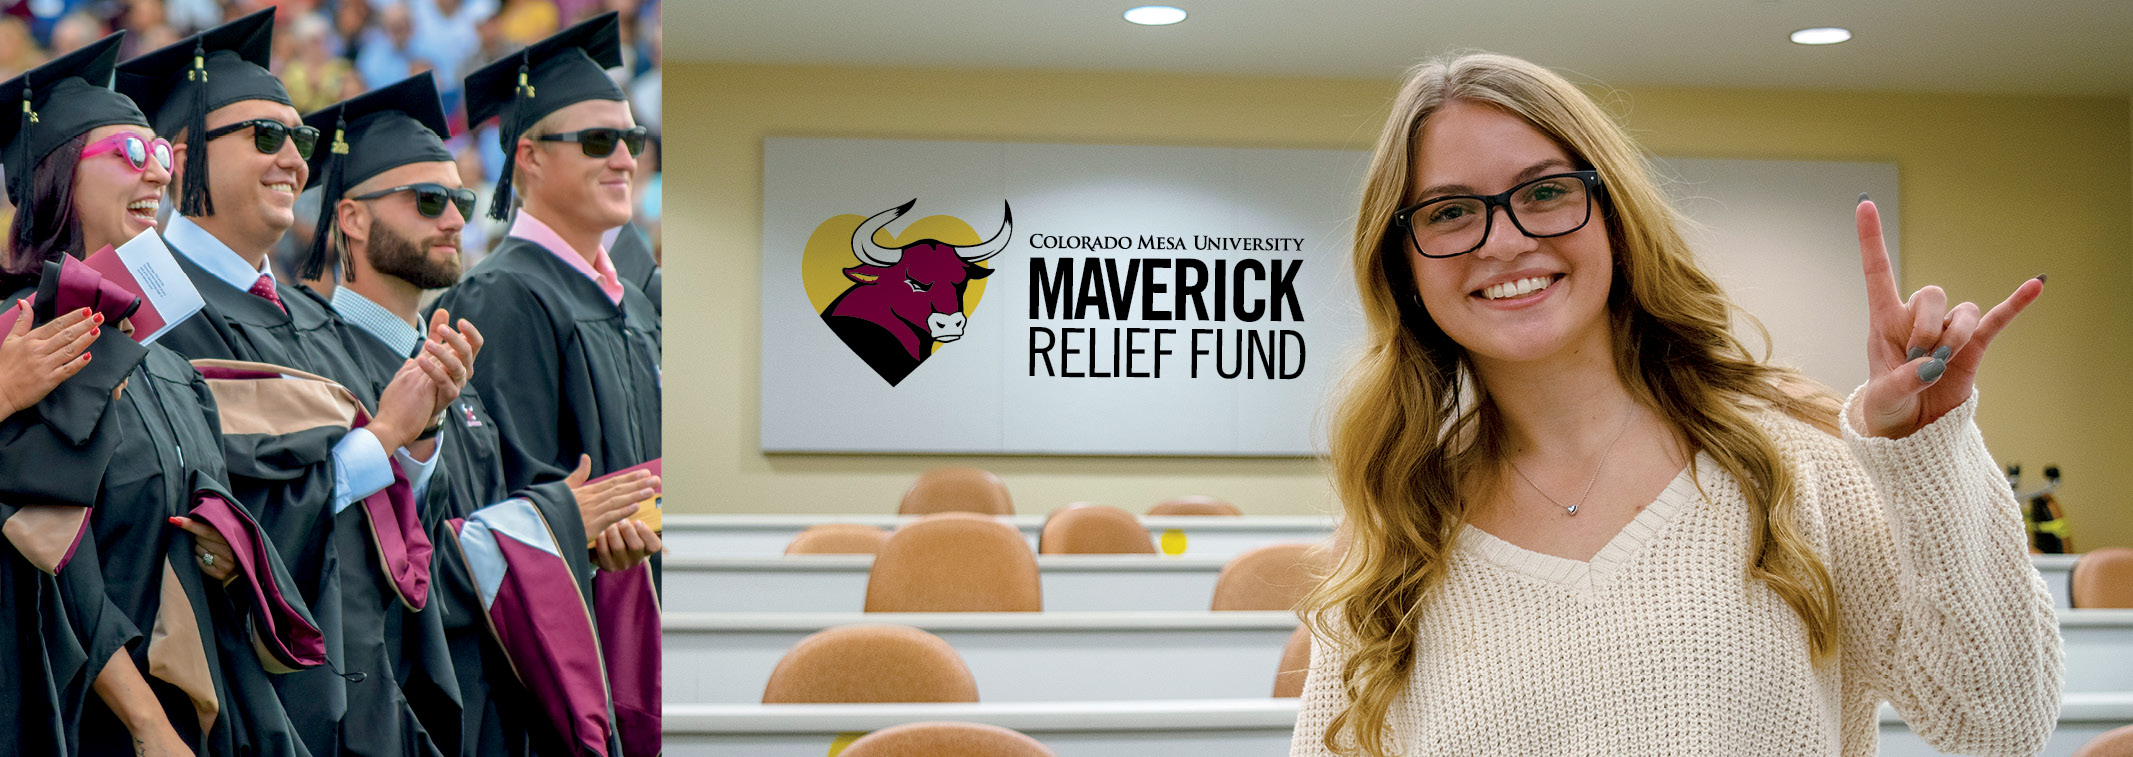 Maverick Relief Fund Students